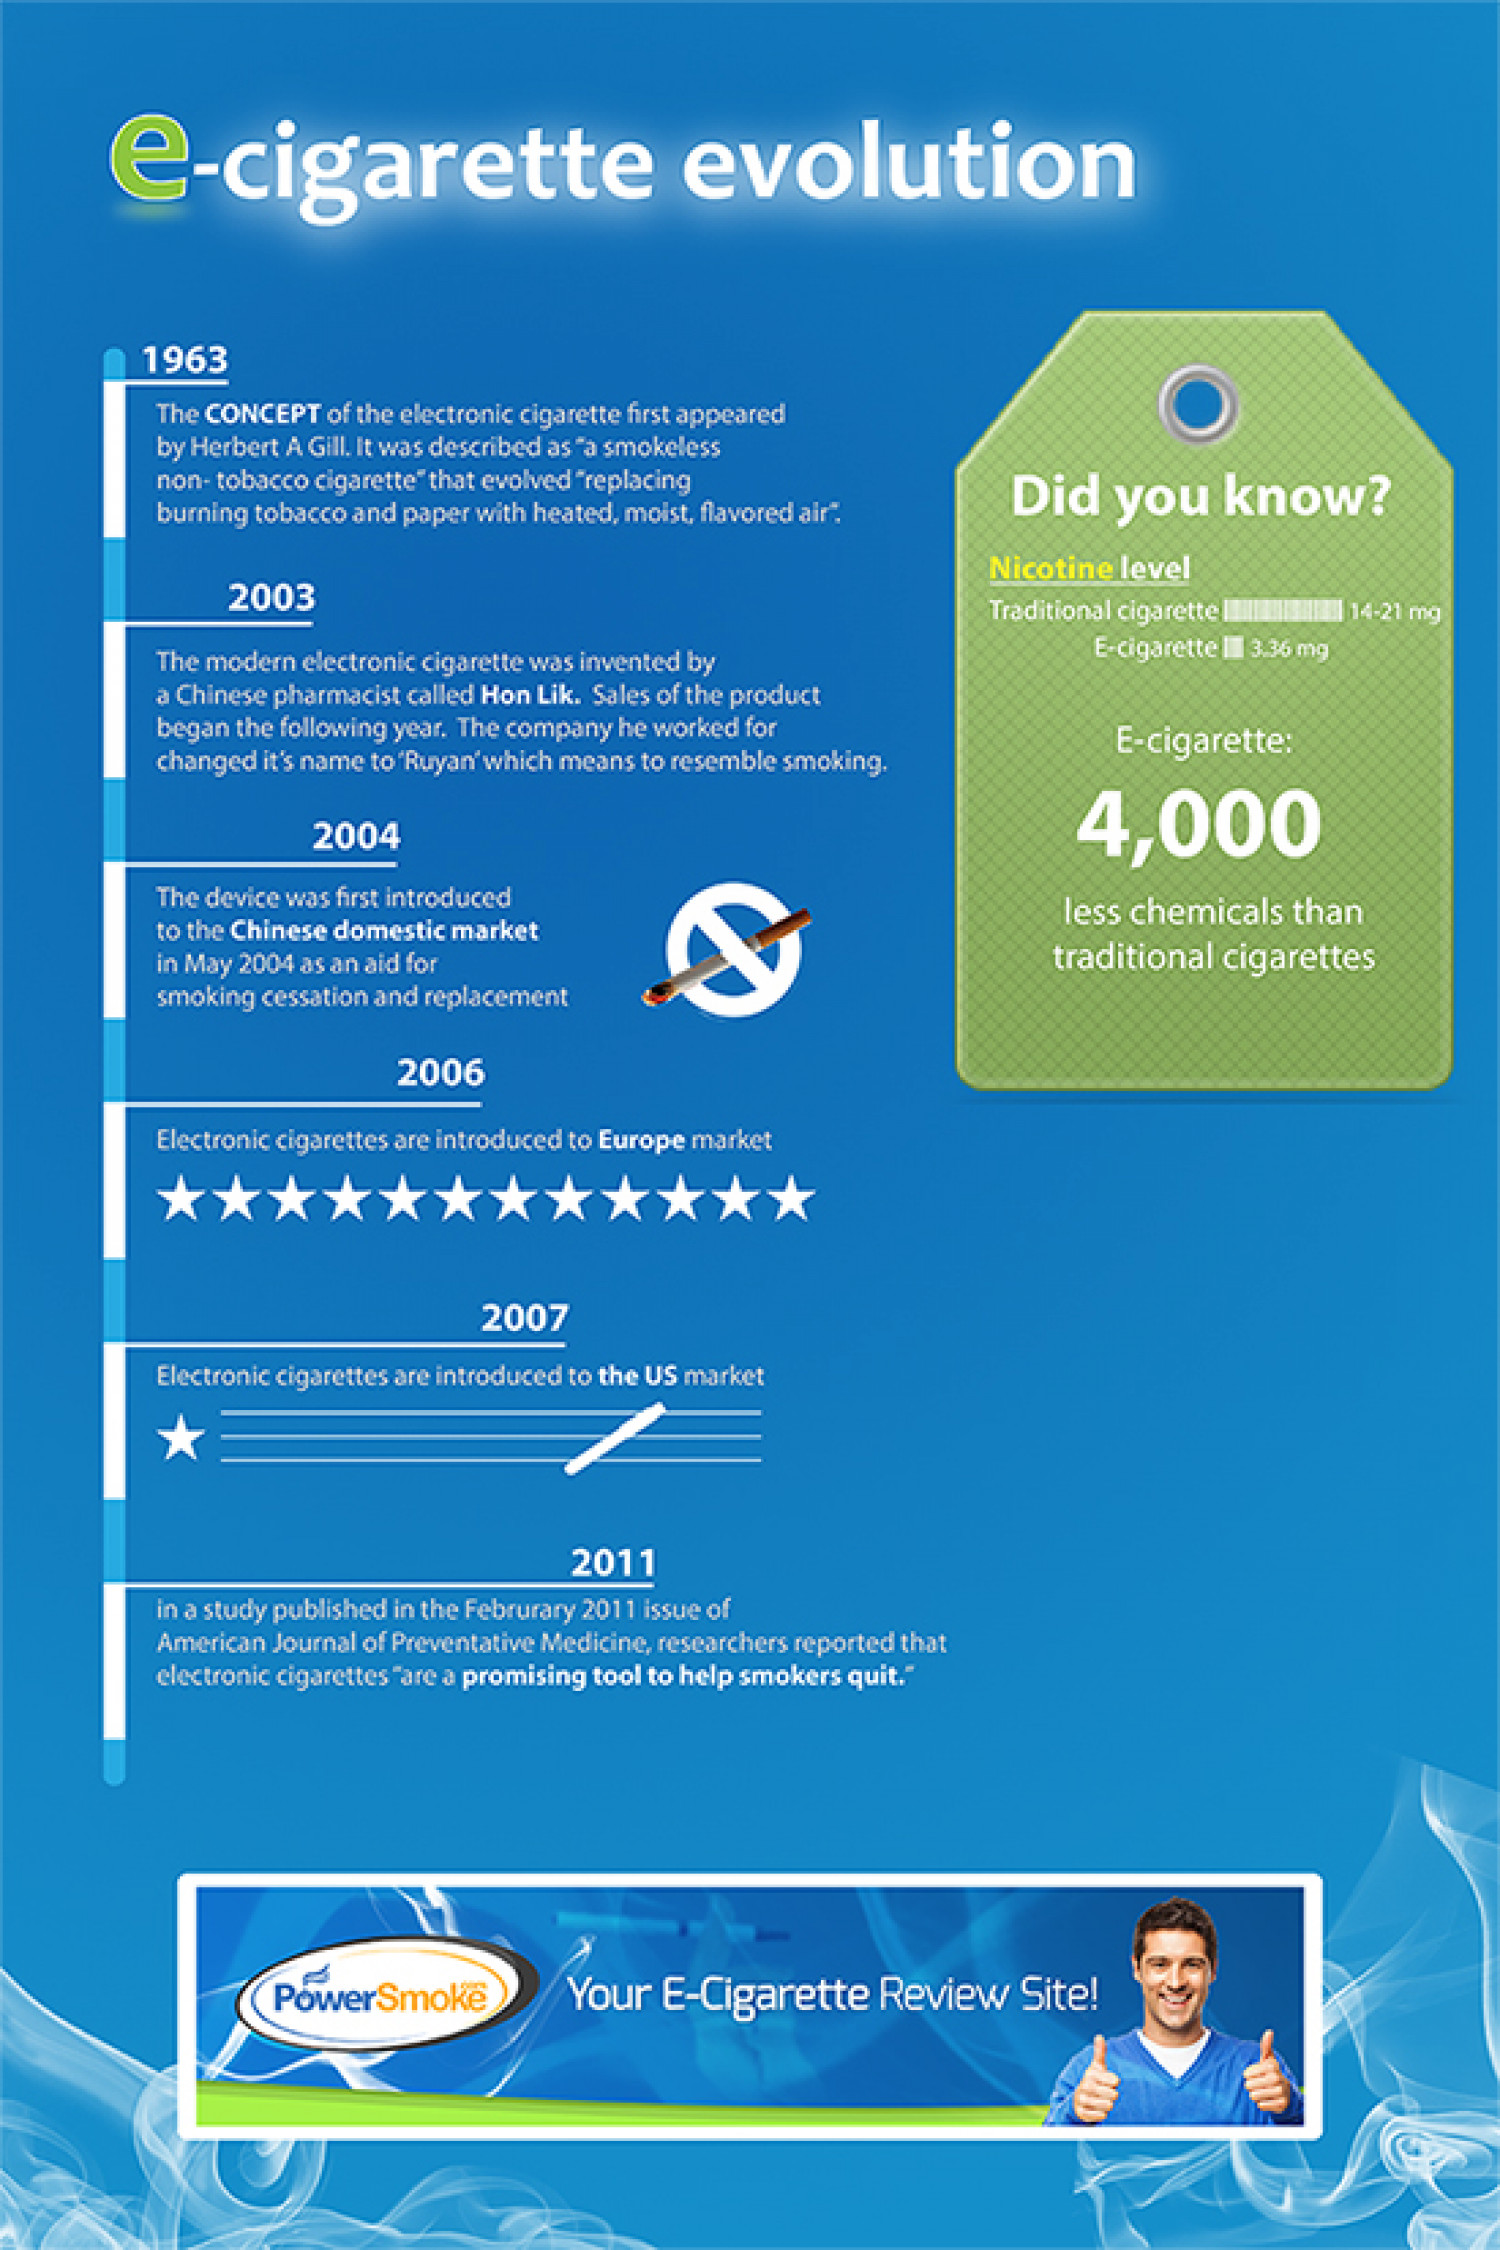 The evolution of the electronic cigarette Infographic